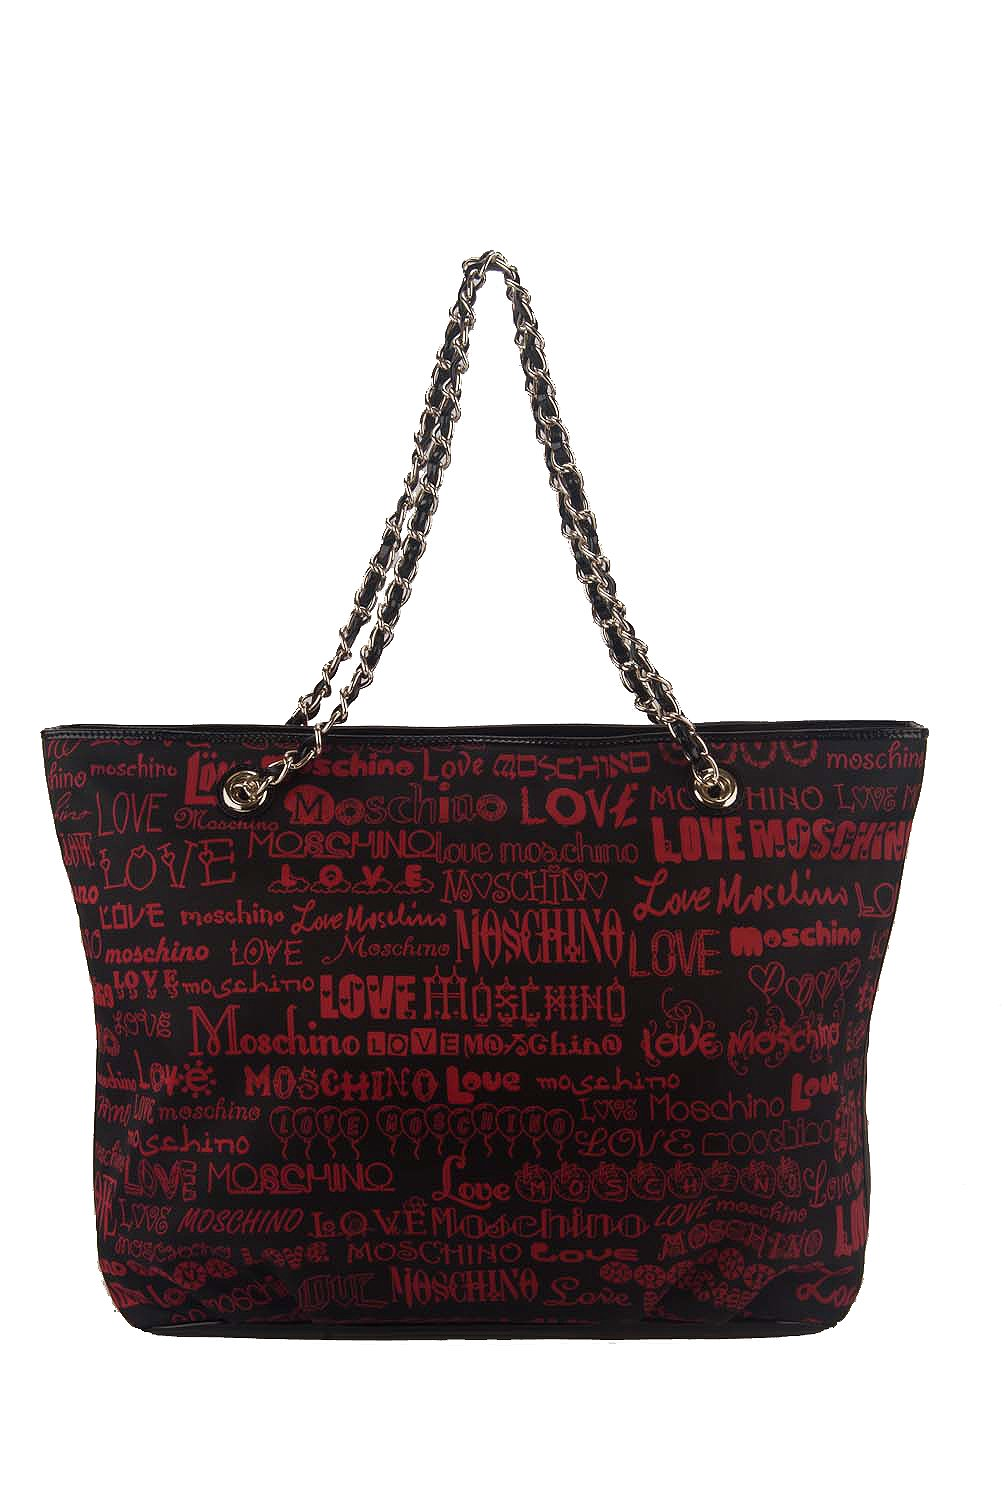 Love Moschino Large Saffiano Chain Strap Logo Shopper Tote Bag